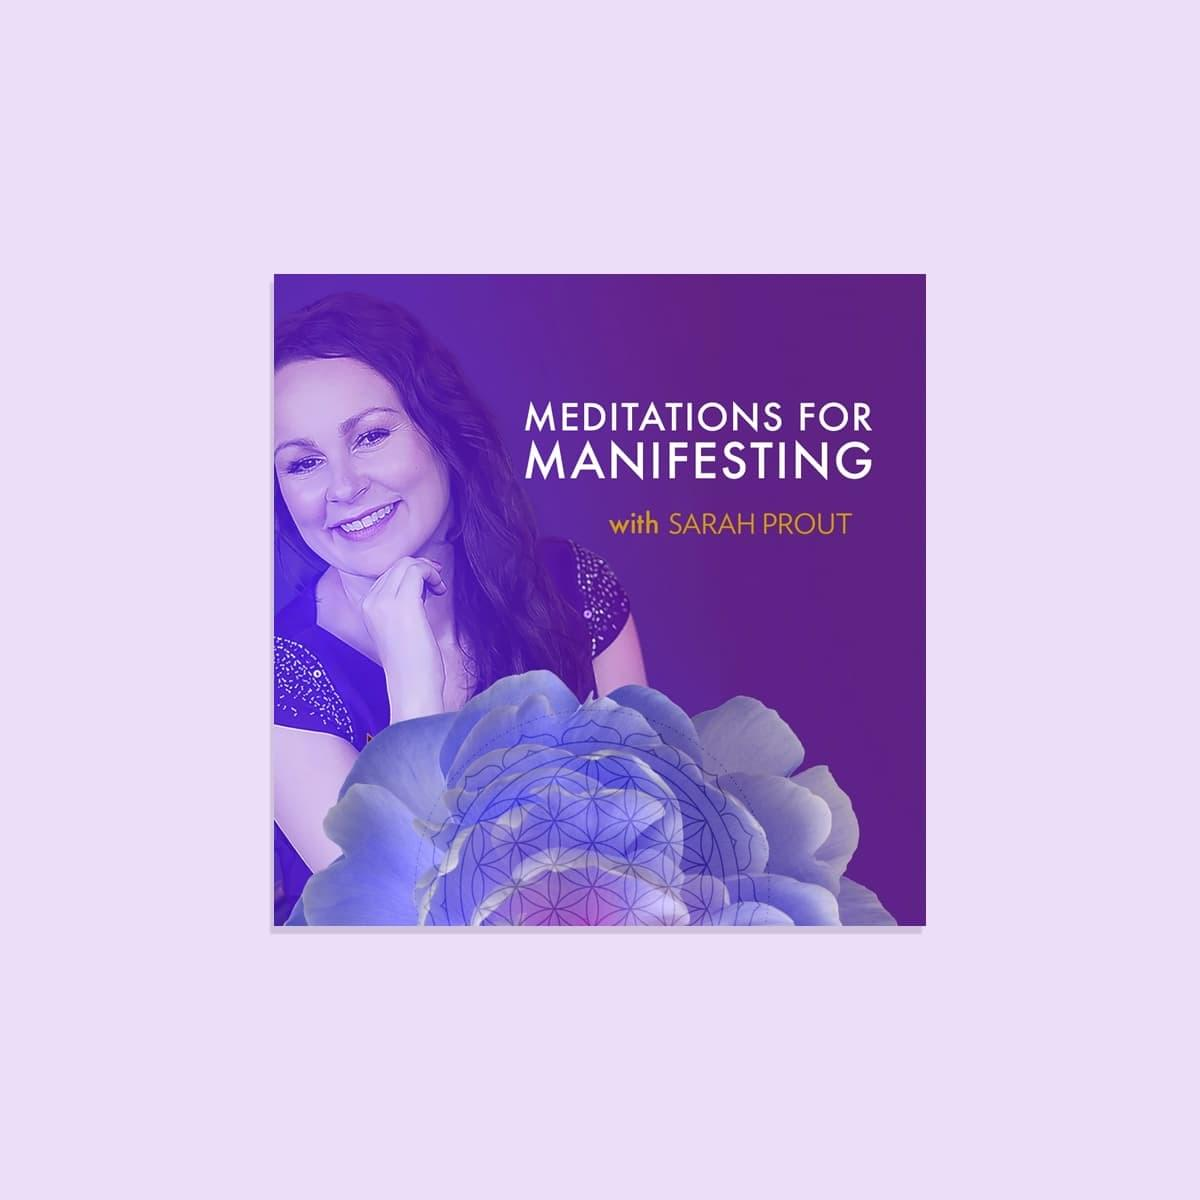 The Meditations for Manifesting Downloadable Album